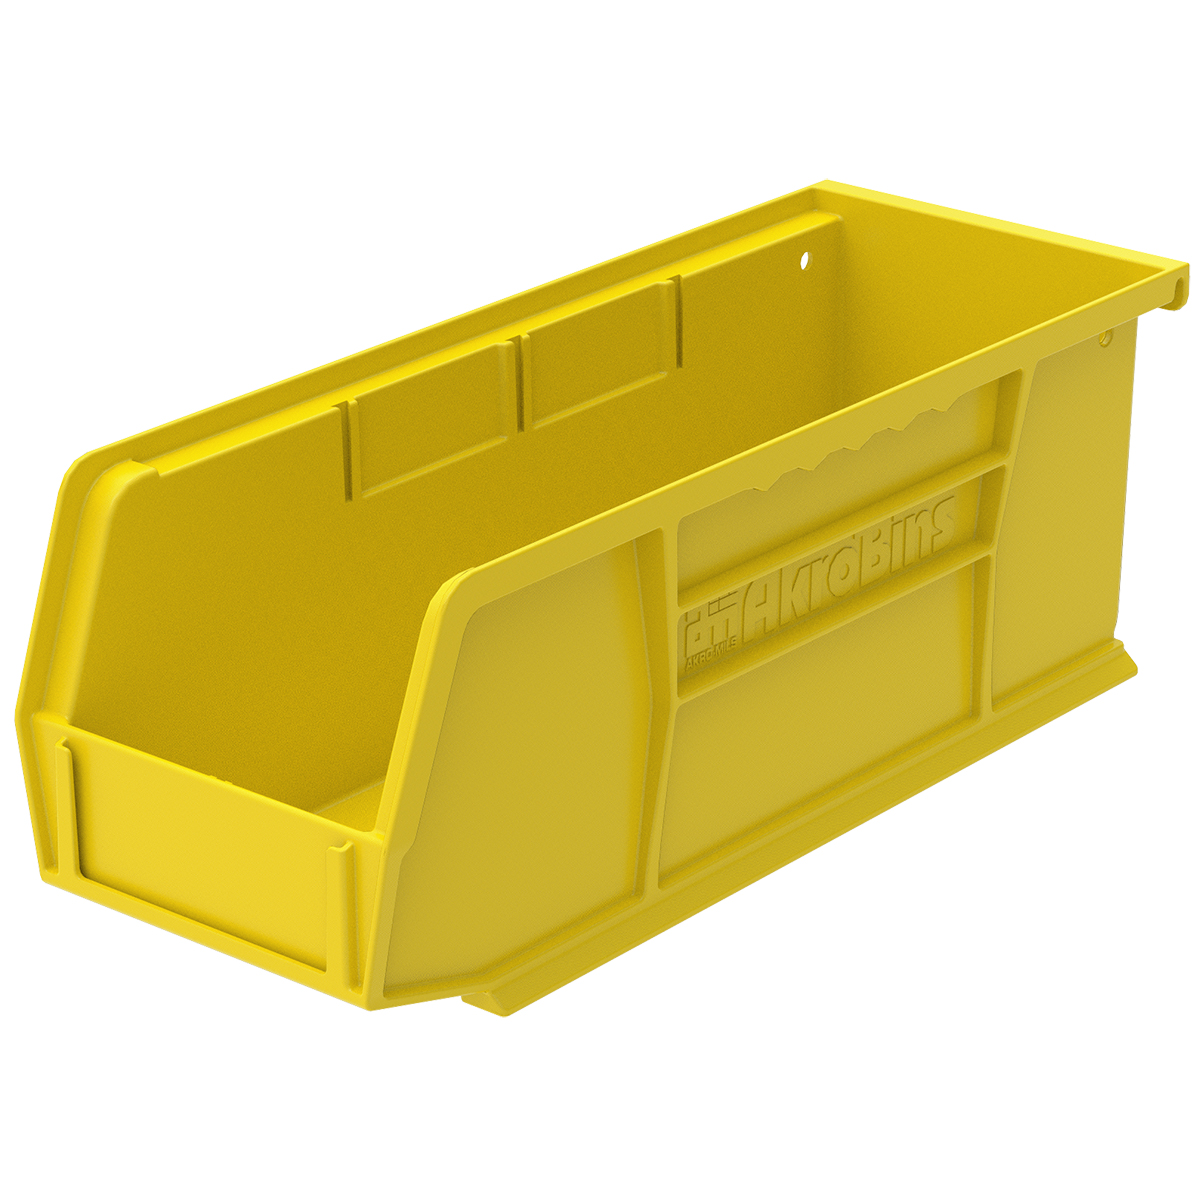 AkroBin 10-7/8 x 4-1/8 x 4, Yellow (30224YELLO).  This item sold in carton quantities of 12.